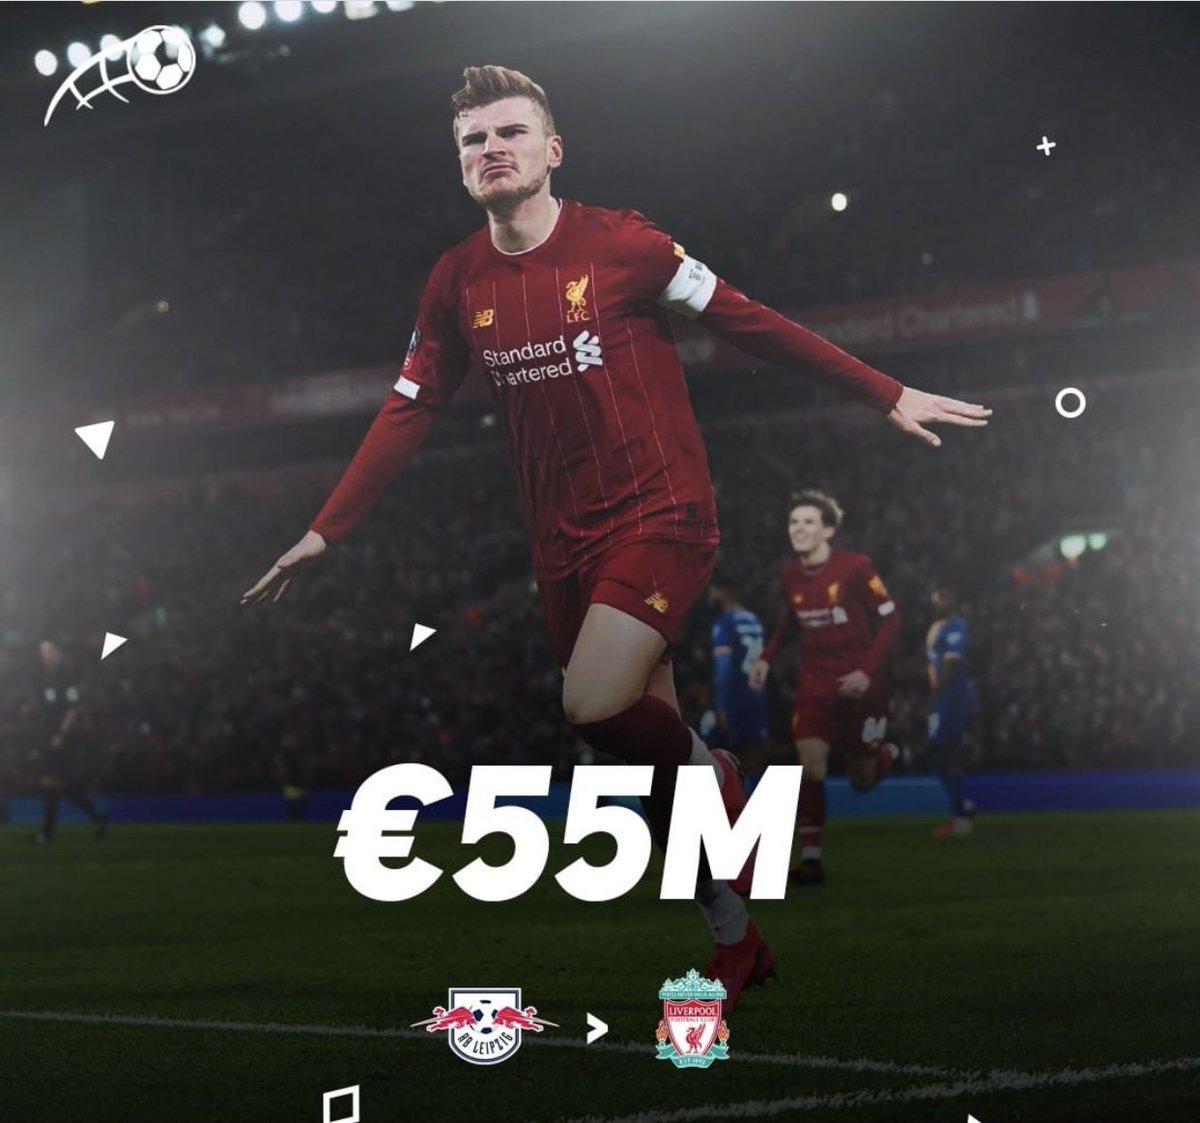 Liverpool seems to have the best papers in the fight for Timo Werner!  The amount will be between 55 & 60 million euros. #rumour #transfer pic.twitter.com/1OG2lAxGRo